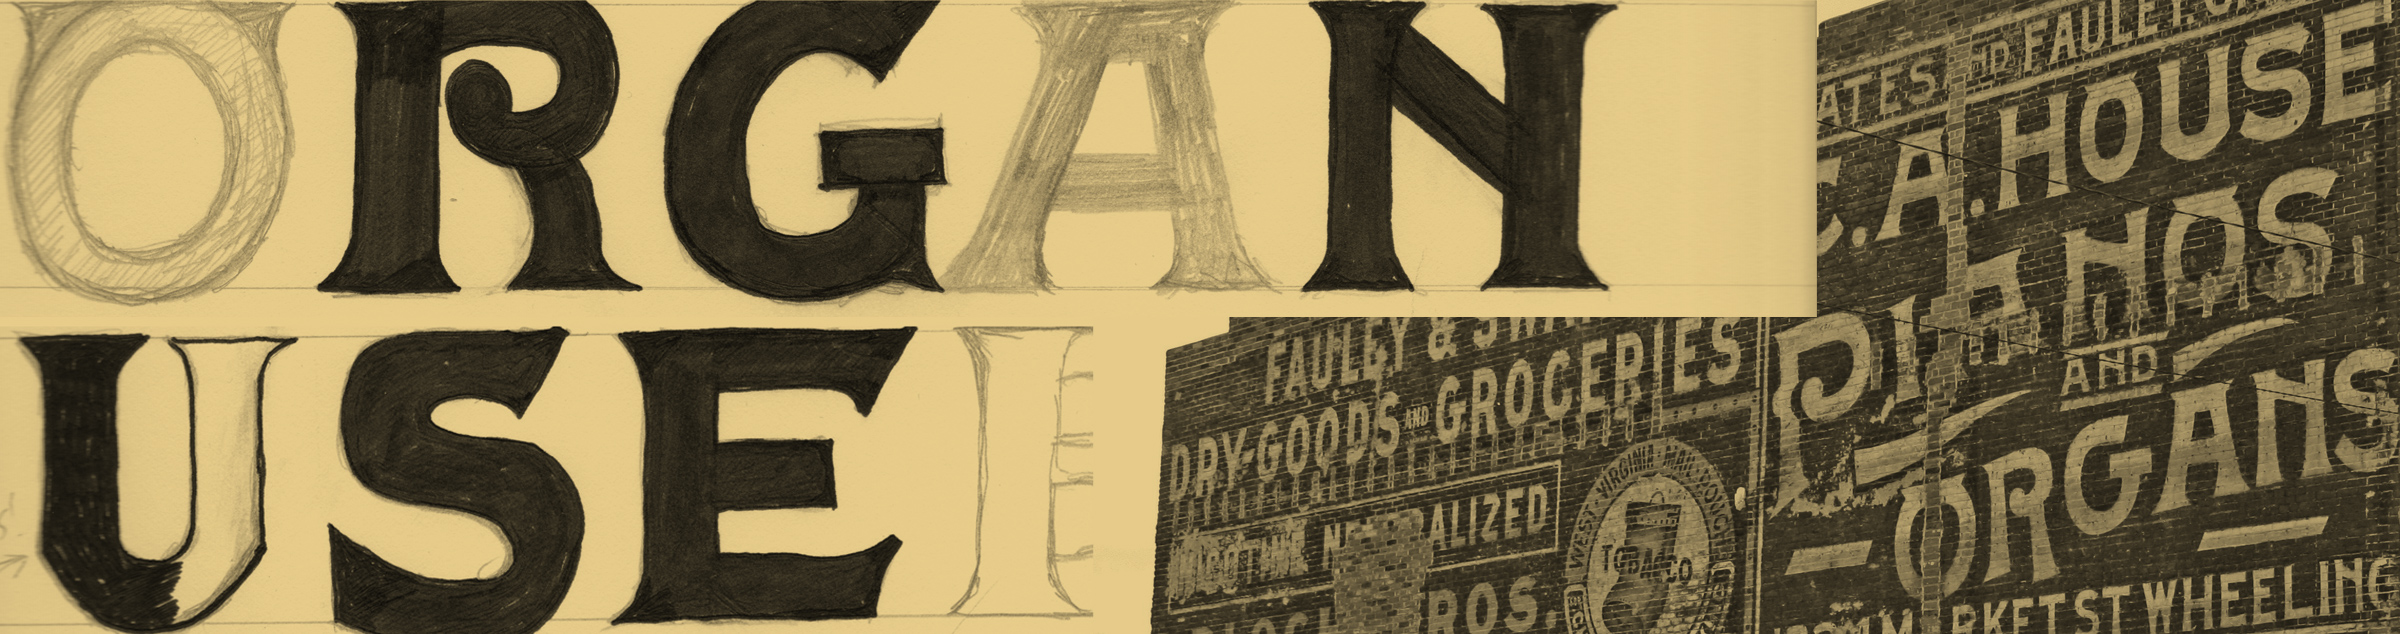 Creating a Typeface from an Old Source